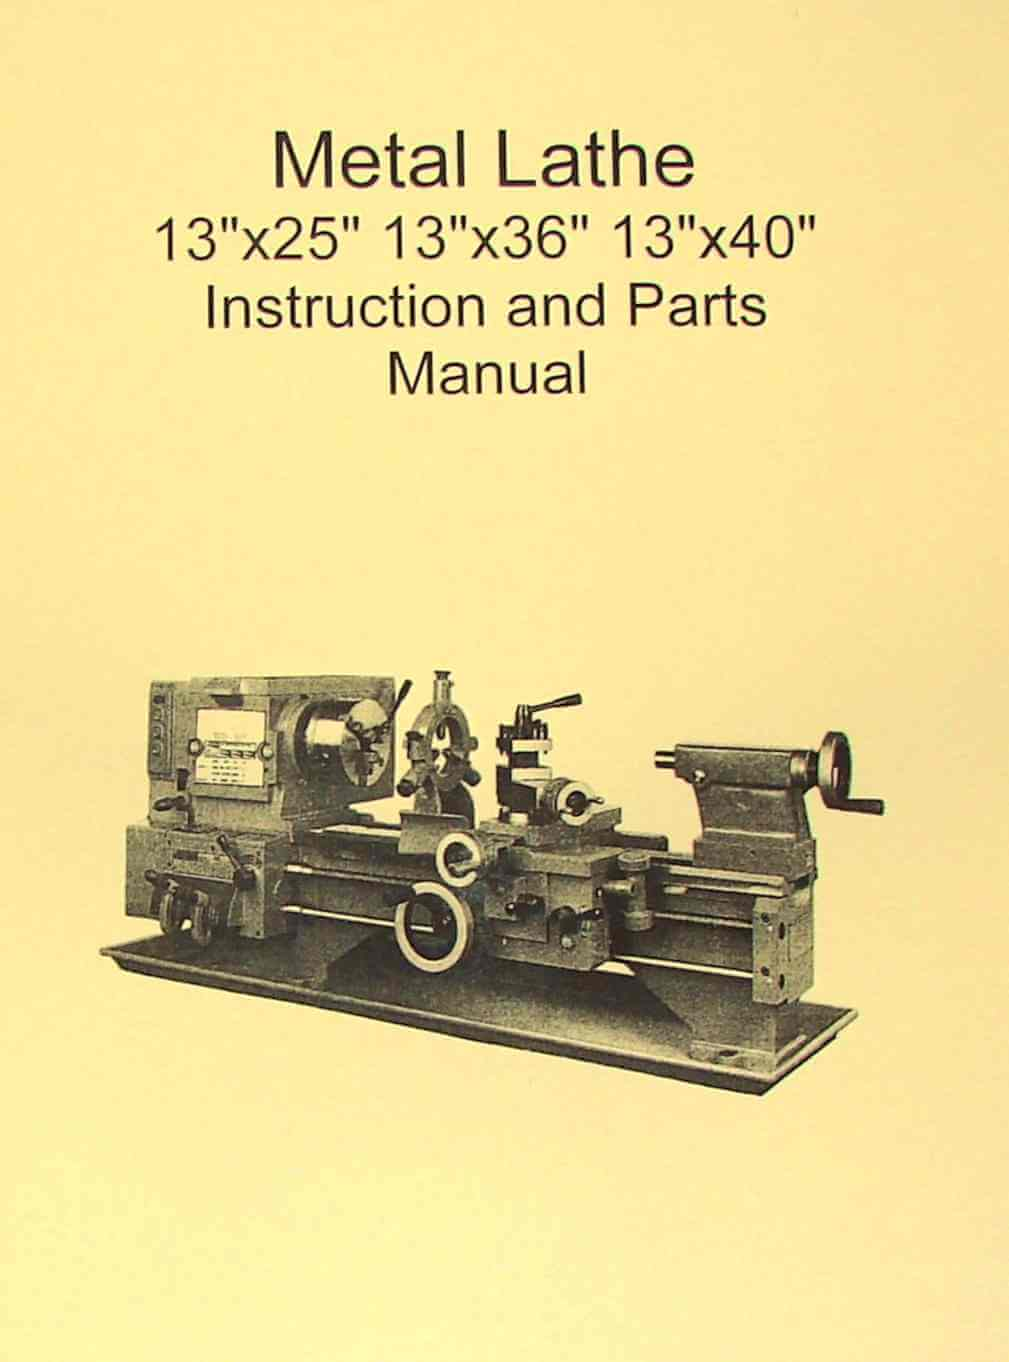 Parts Of A Leblond Lathe Manual Wiring Schematic